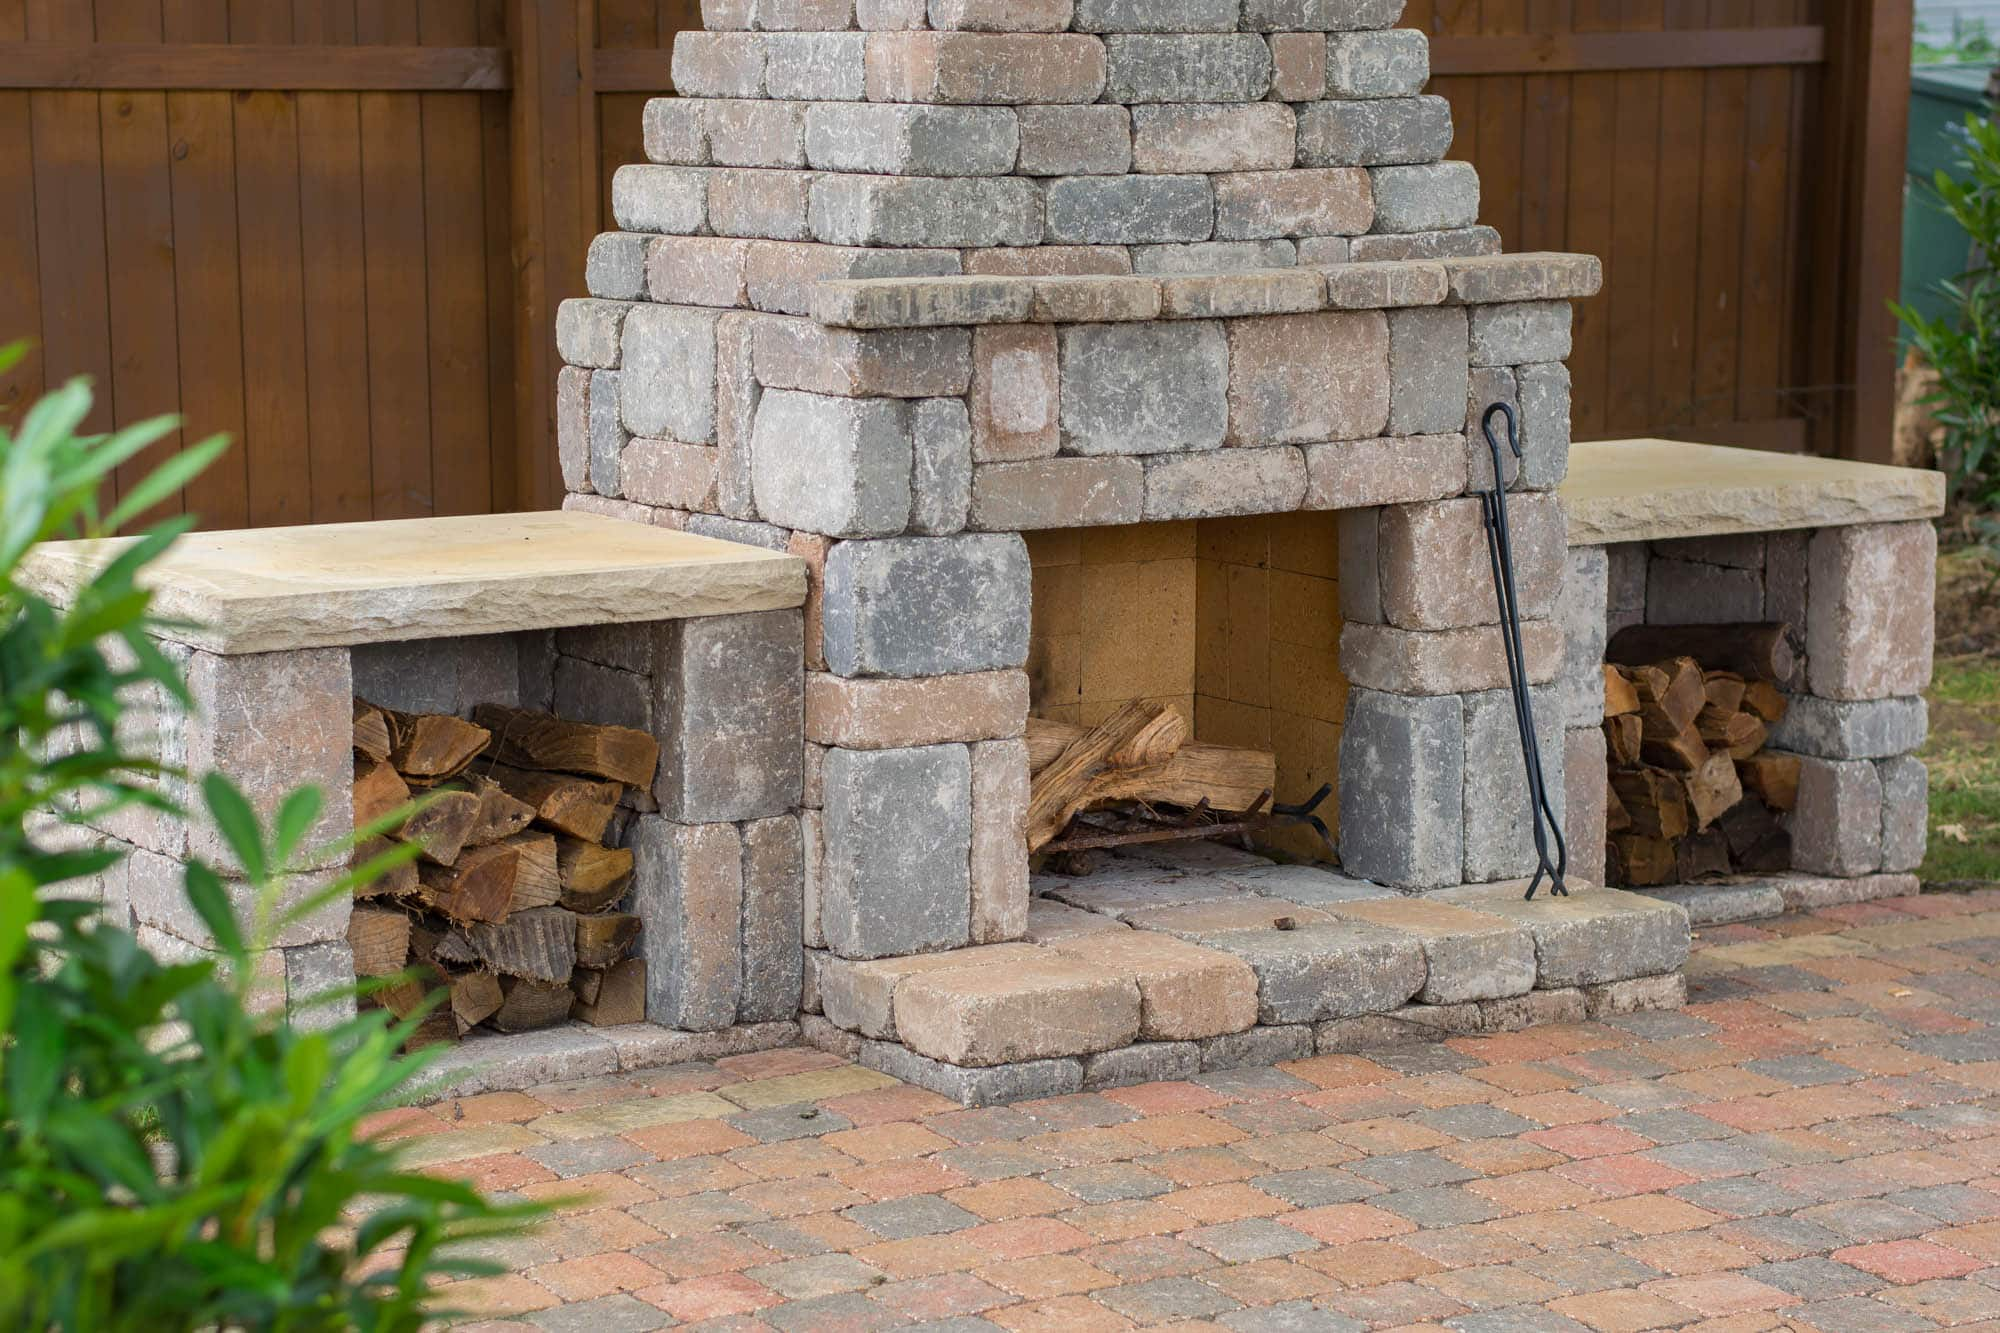 fireplace aspen pits mfg fireplaces outdoor kit diy fire flo